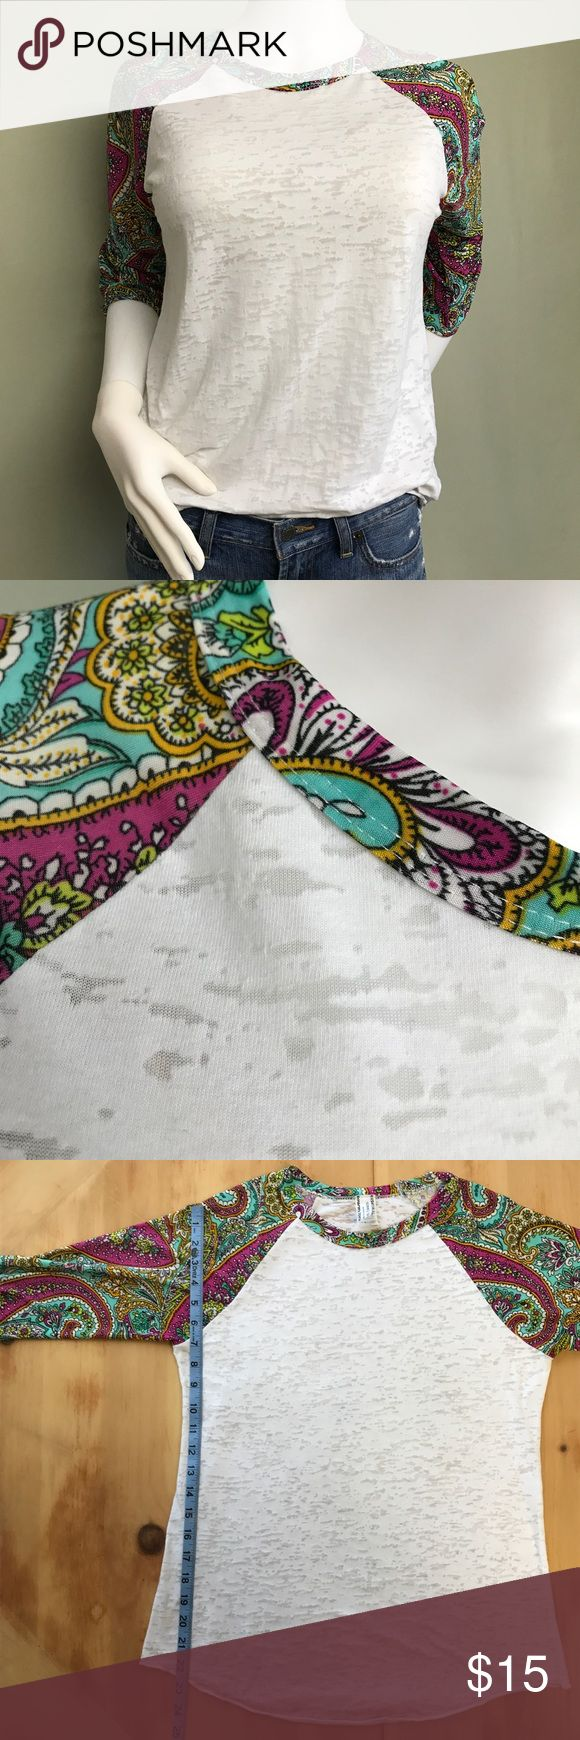 Giddy Up Glamour 3/4 Sleeve Pink & White Shirt Like new condition. Paisley print sleeves and collar in pink, teal, white, lime green, and goldenrod. The white shirt area has sheer spots so layering is needed. No holes, rips, or stains.  Approximate Measurements Laying Flat: (See Photos)  •Pet & Smoke Free Home •No Trades •BUNDLE DISCOUNT Feel free to make offer or ask questions!! Thanks for visiting my closet!! Giddy Up Girl Tops